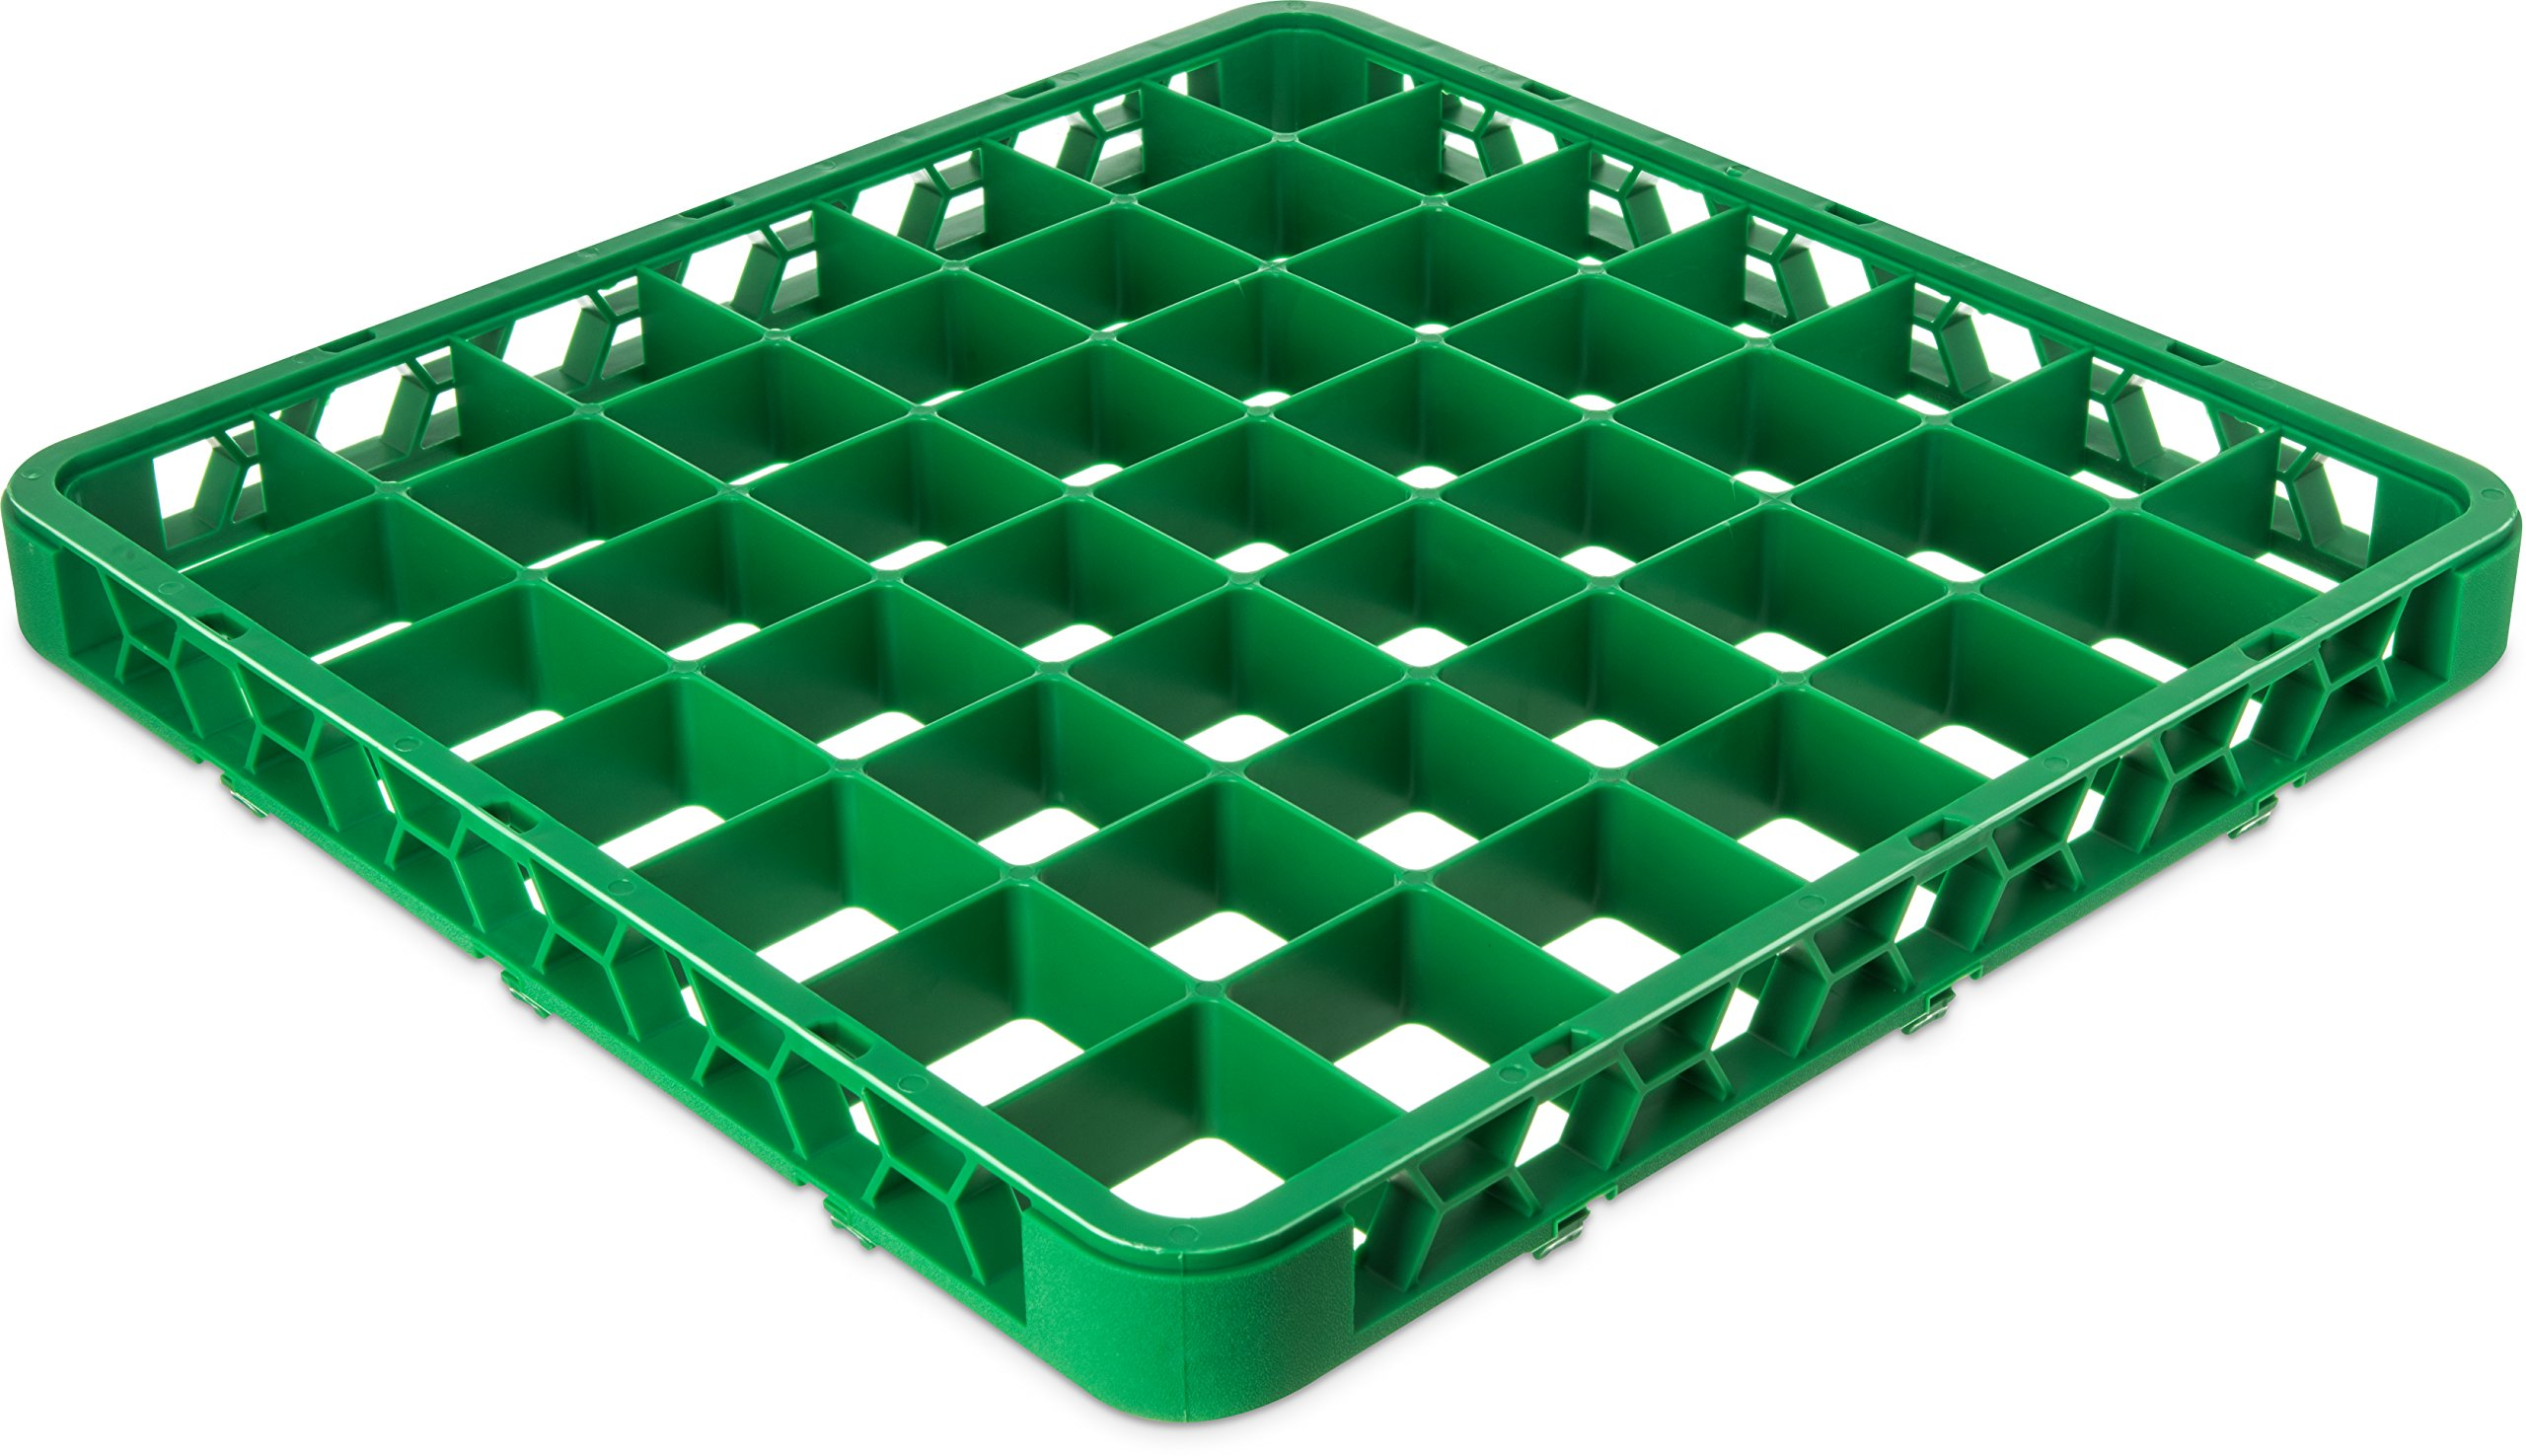 Carlisle RE49C09 OptiClean 49 Compartment Glass Rack Extender, 2.38'' Compartments, Green (Pack of 6)